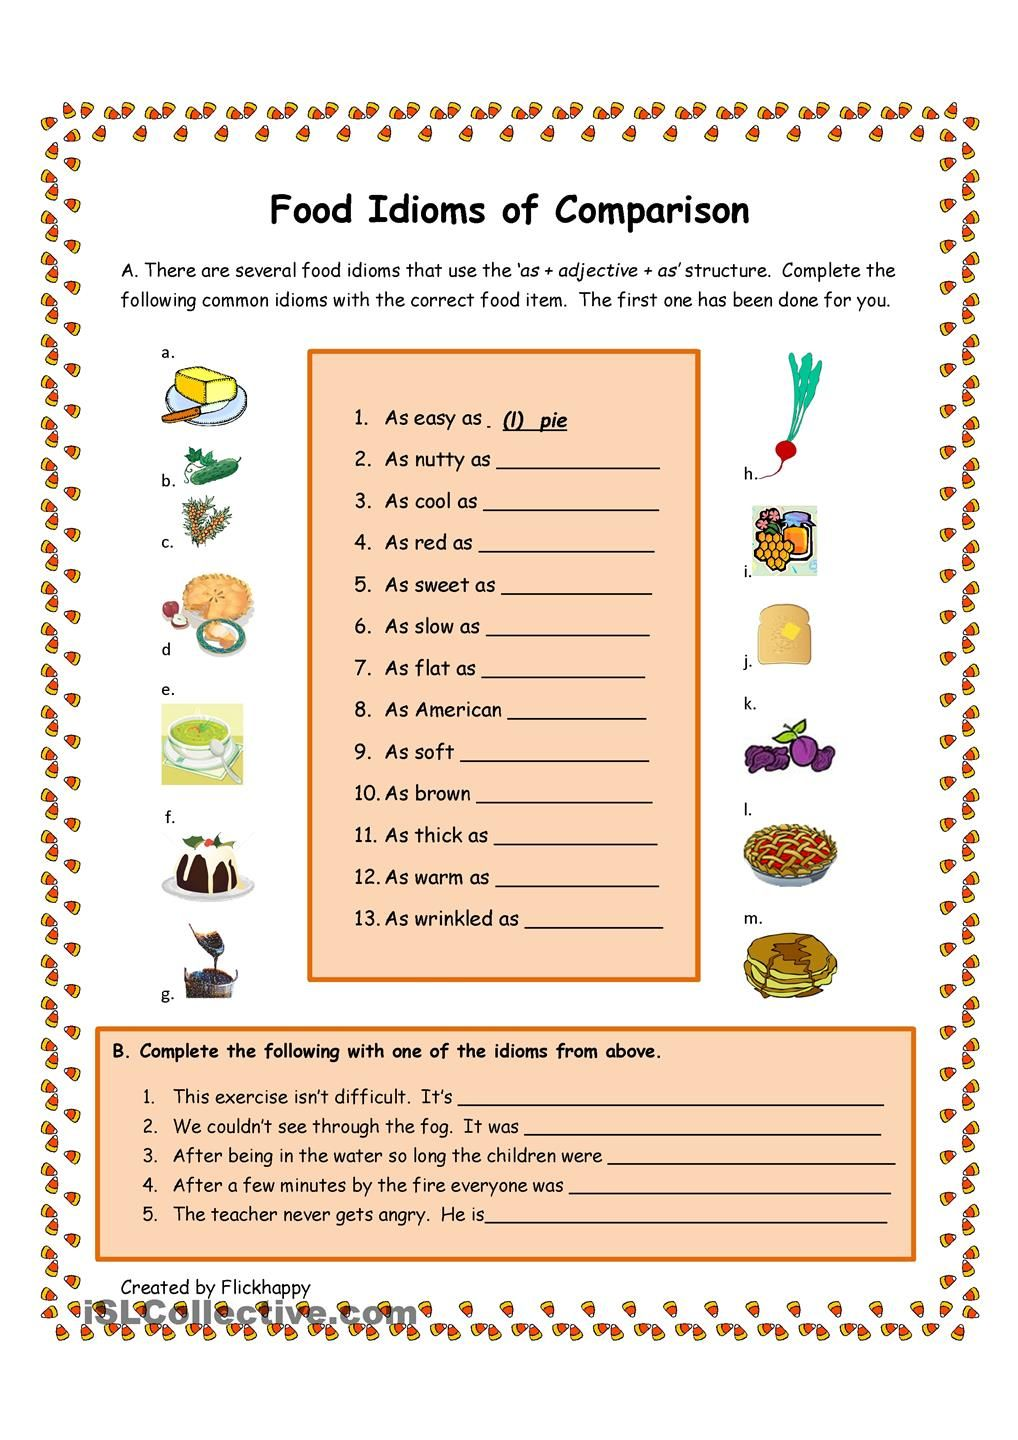 worksheet Adages And Proverbs Worksheets food idioms of comparison english proverbs expressions worksheet free esl printable worksheets made by teachers